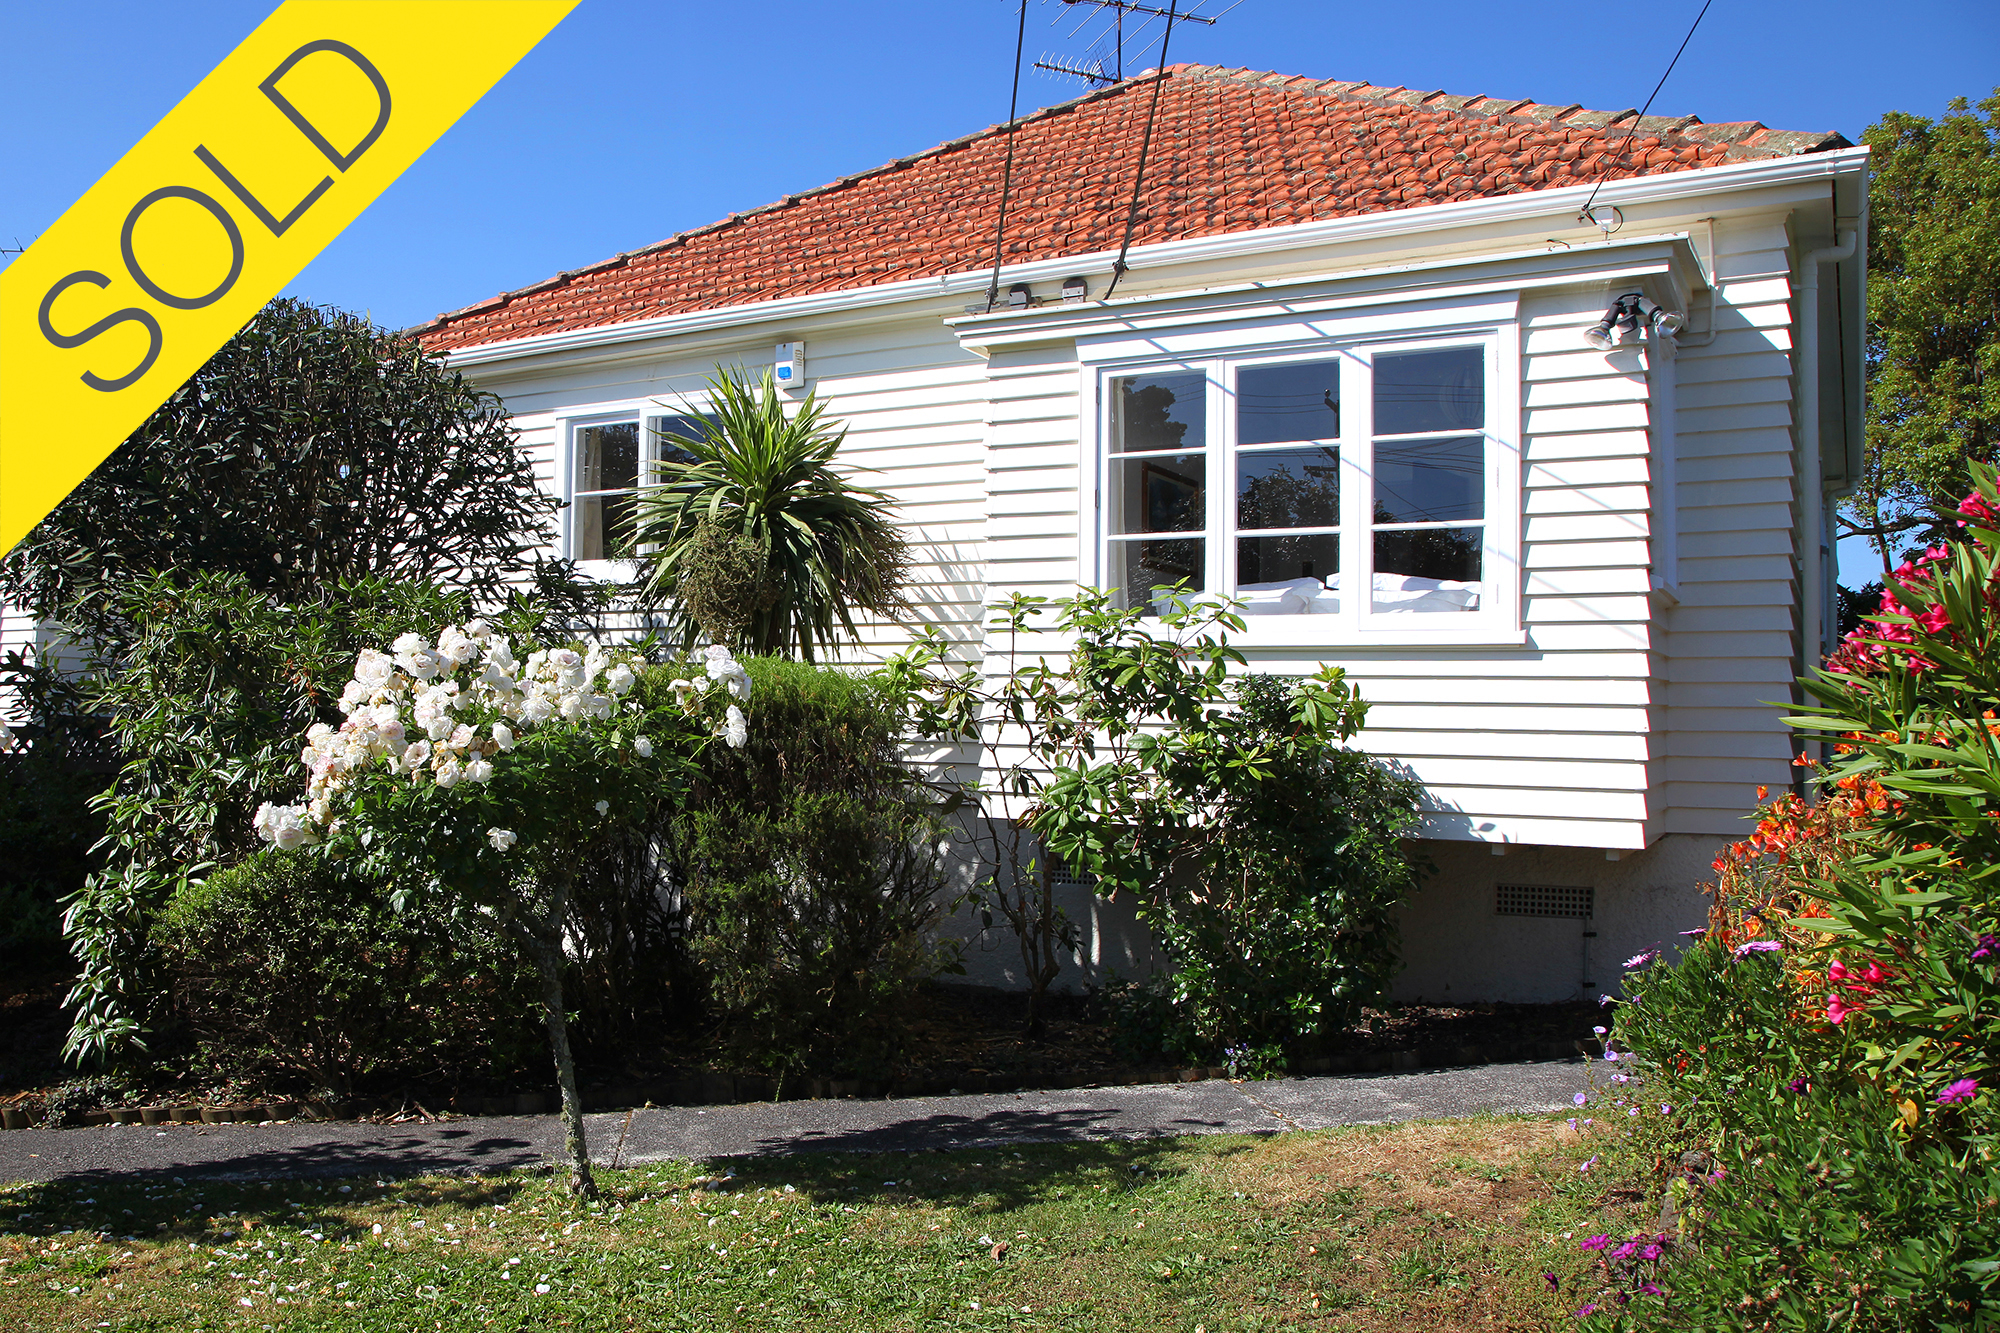 51 Namata Road, One Tree Hill, Auckland - SOLD DECEMBER 20173 Beds I 1 Bath